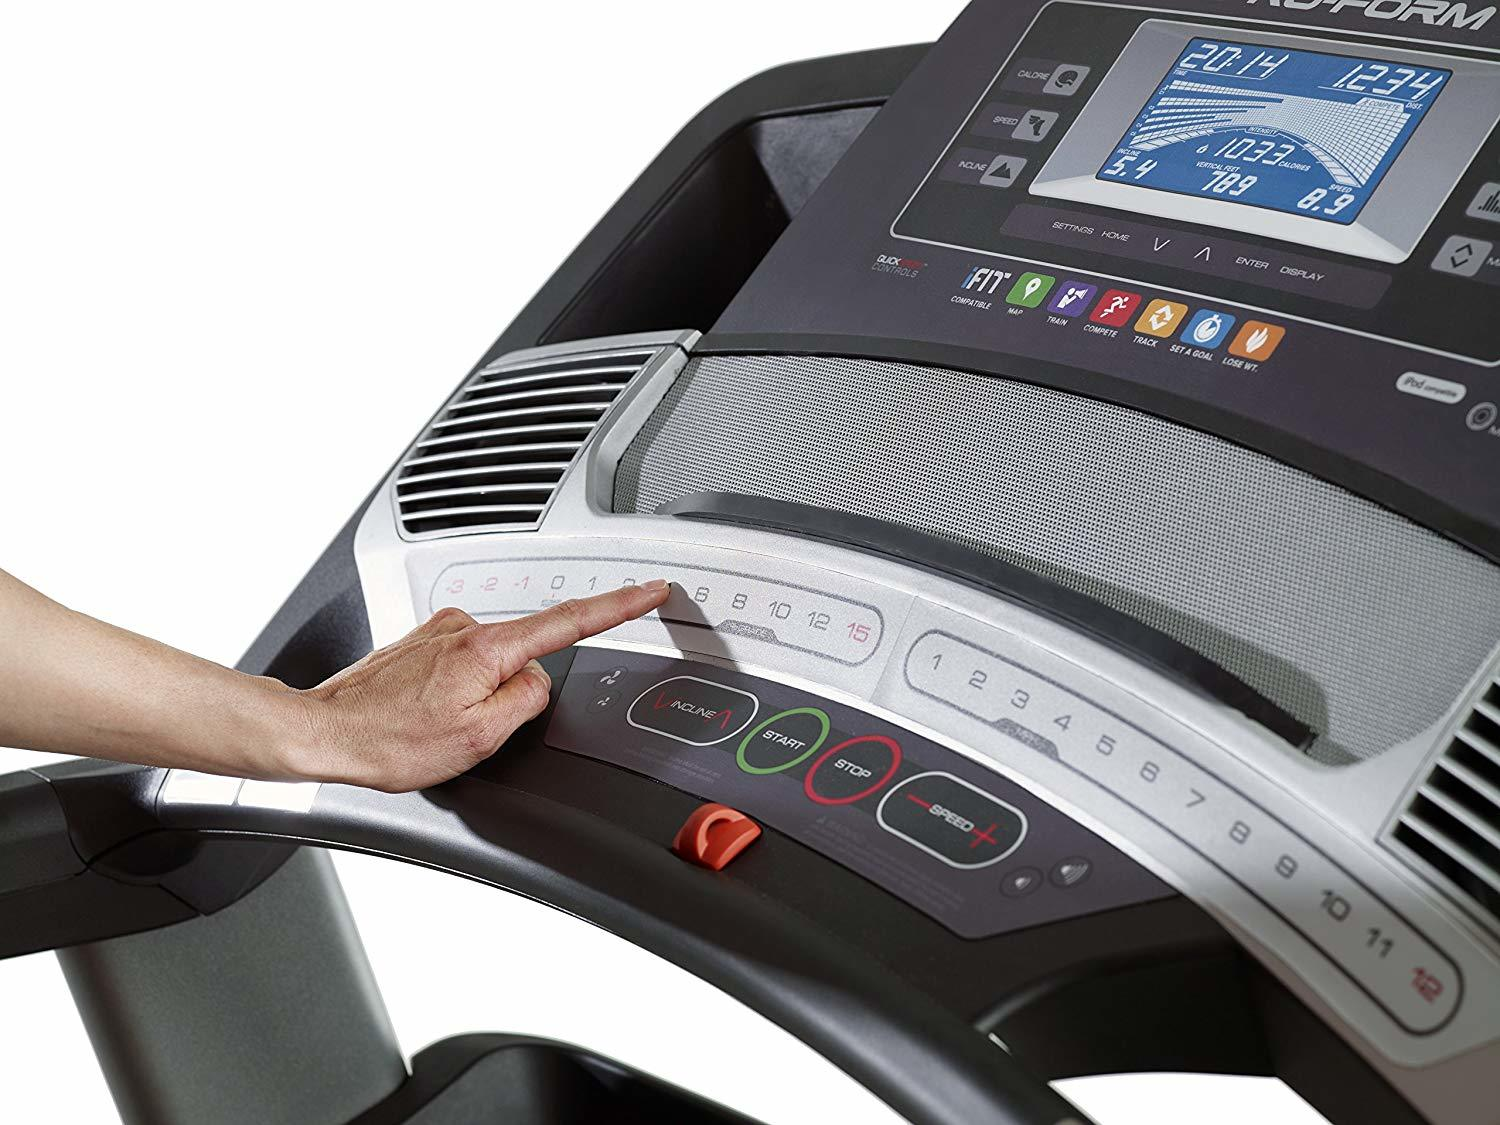 6 BEST commercial treadmills hands DOWN! 7